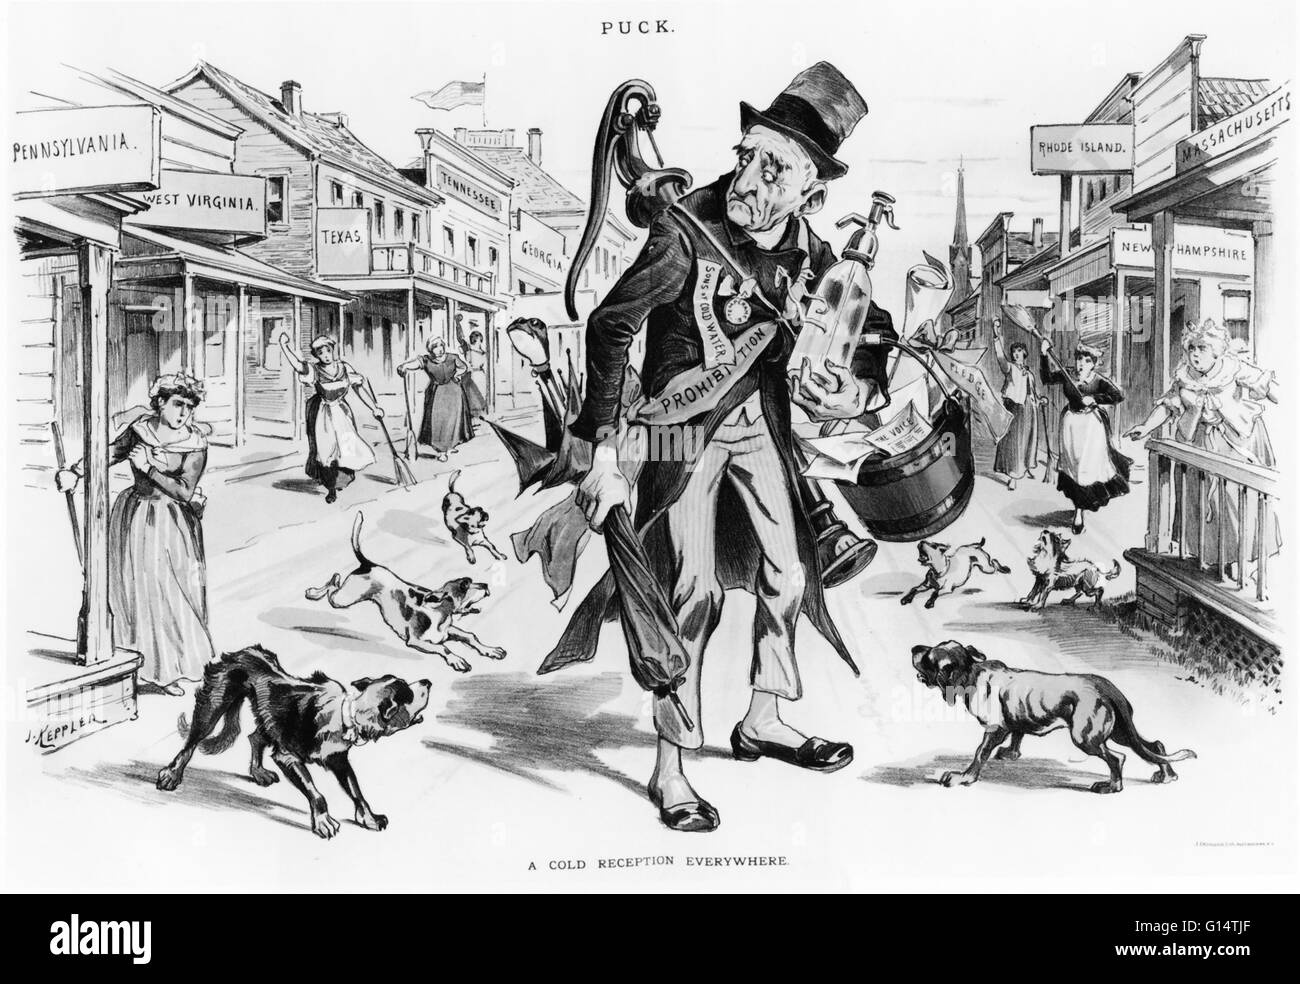 American Political Cartoon Showing Stock Photos   American Political     Political cartoon showing Old Man Prohibition receiving  a cold reception  everywhere     Stock